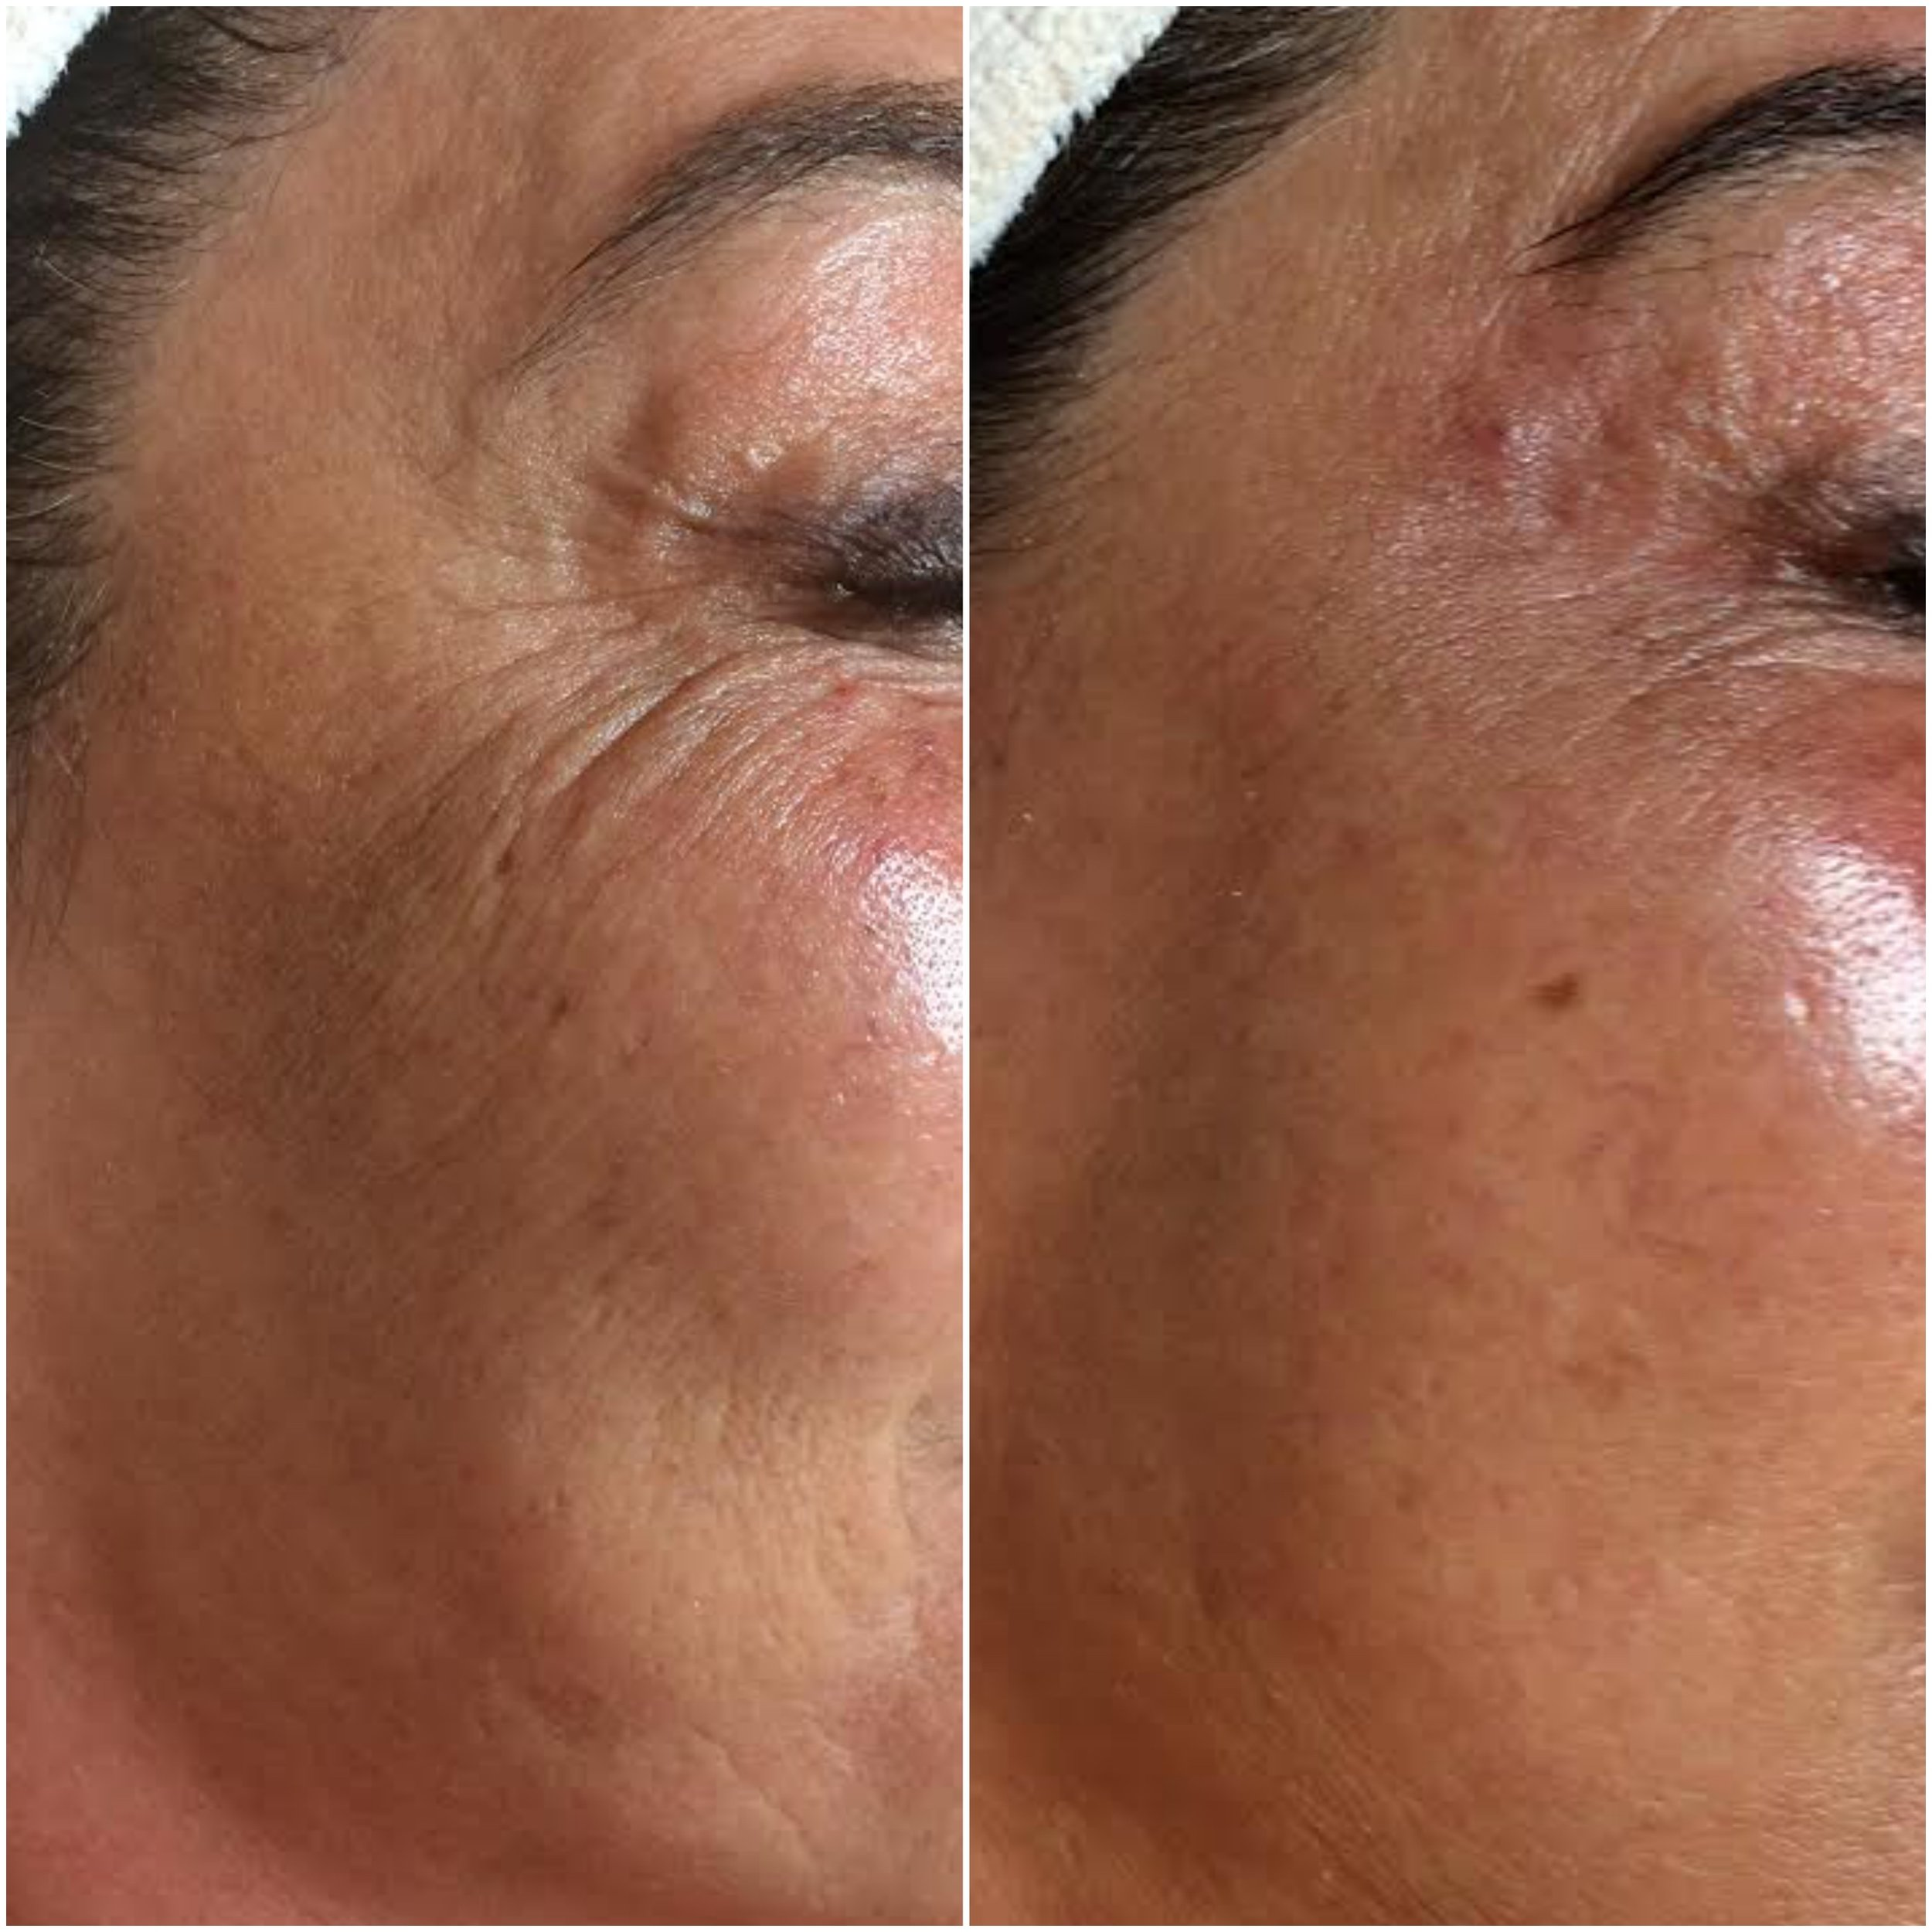 Collagen increased, fine lines filled and tone/texture optimized using NŪR hi-tech facial series